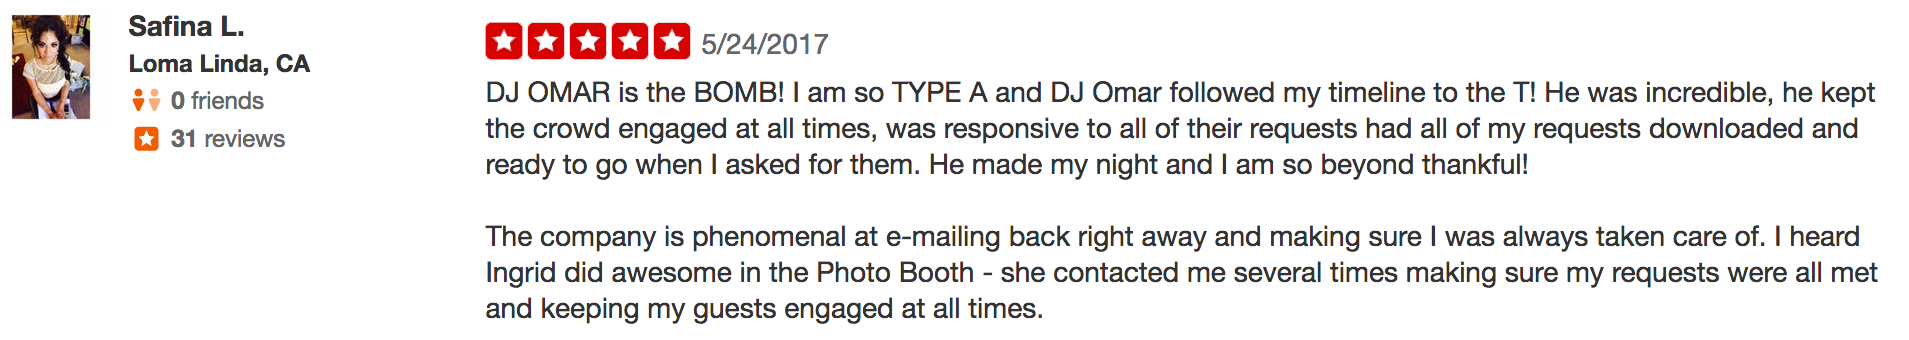 Safina dj and photo booth review